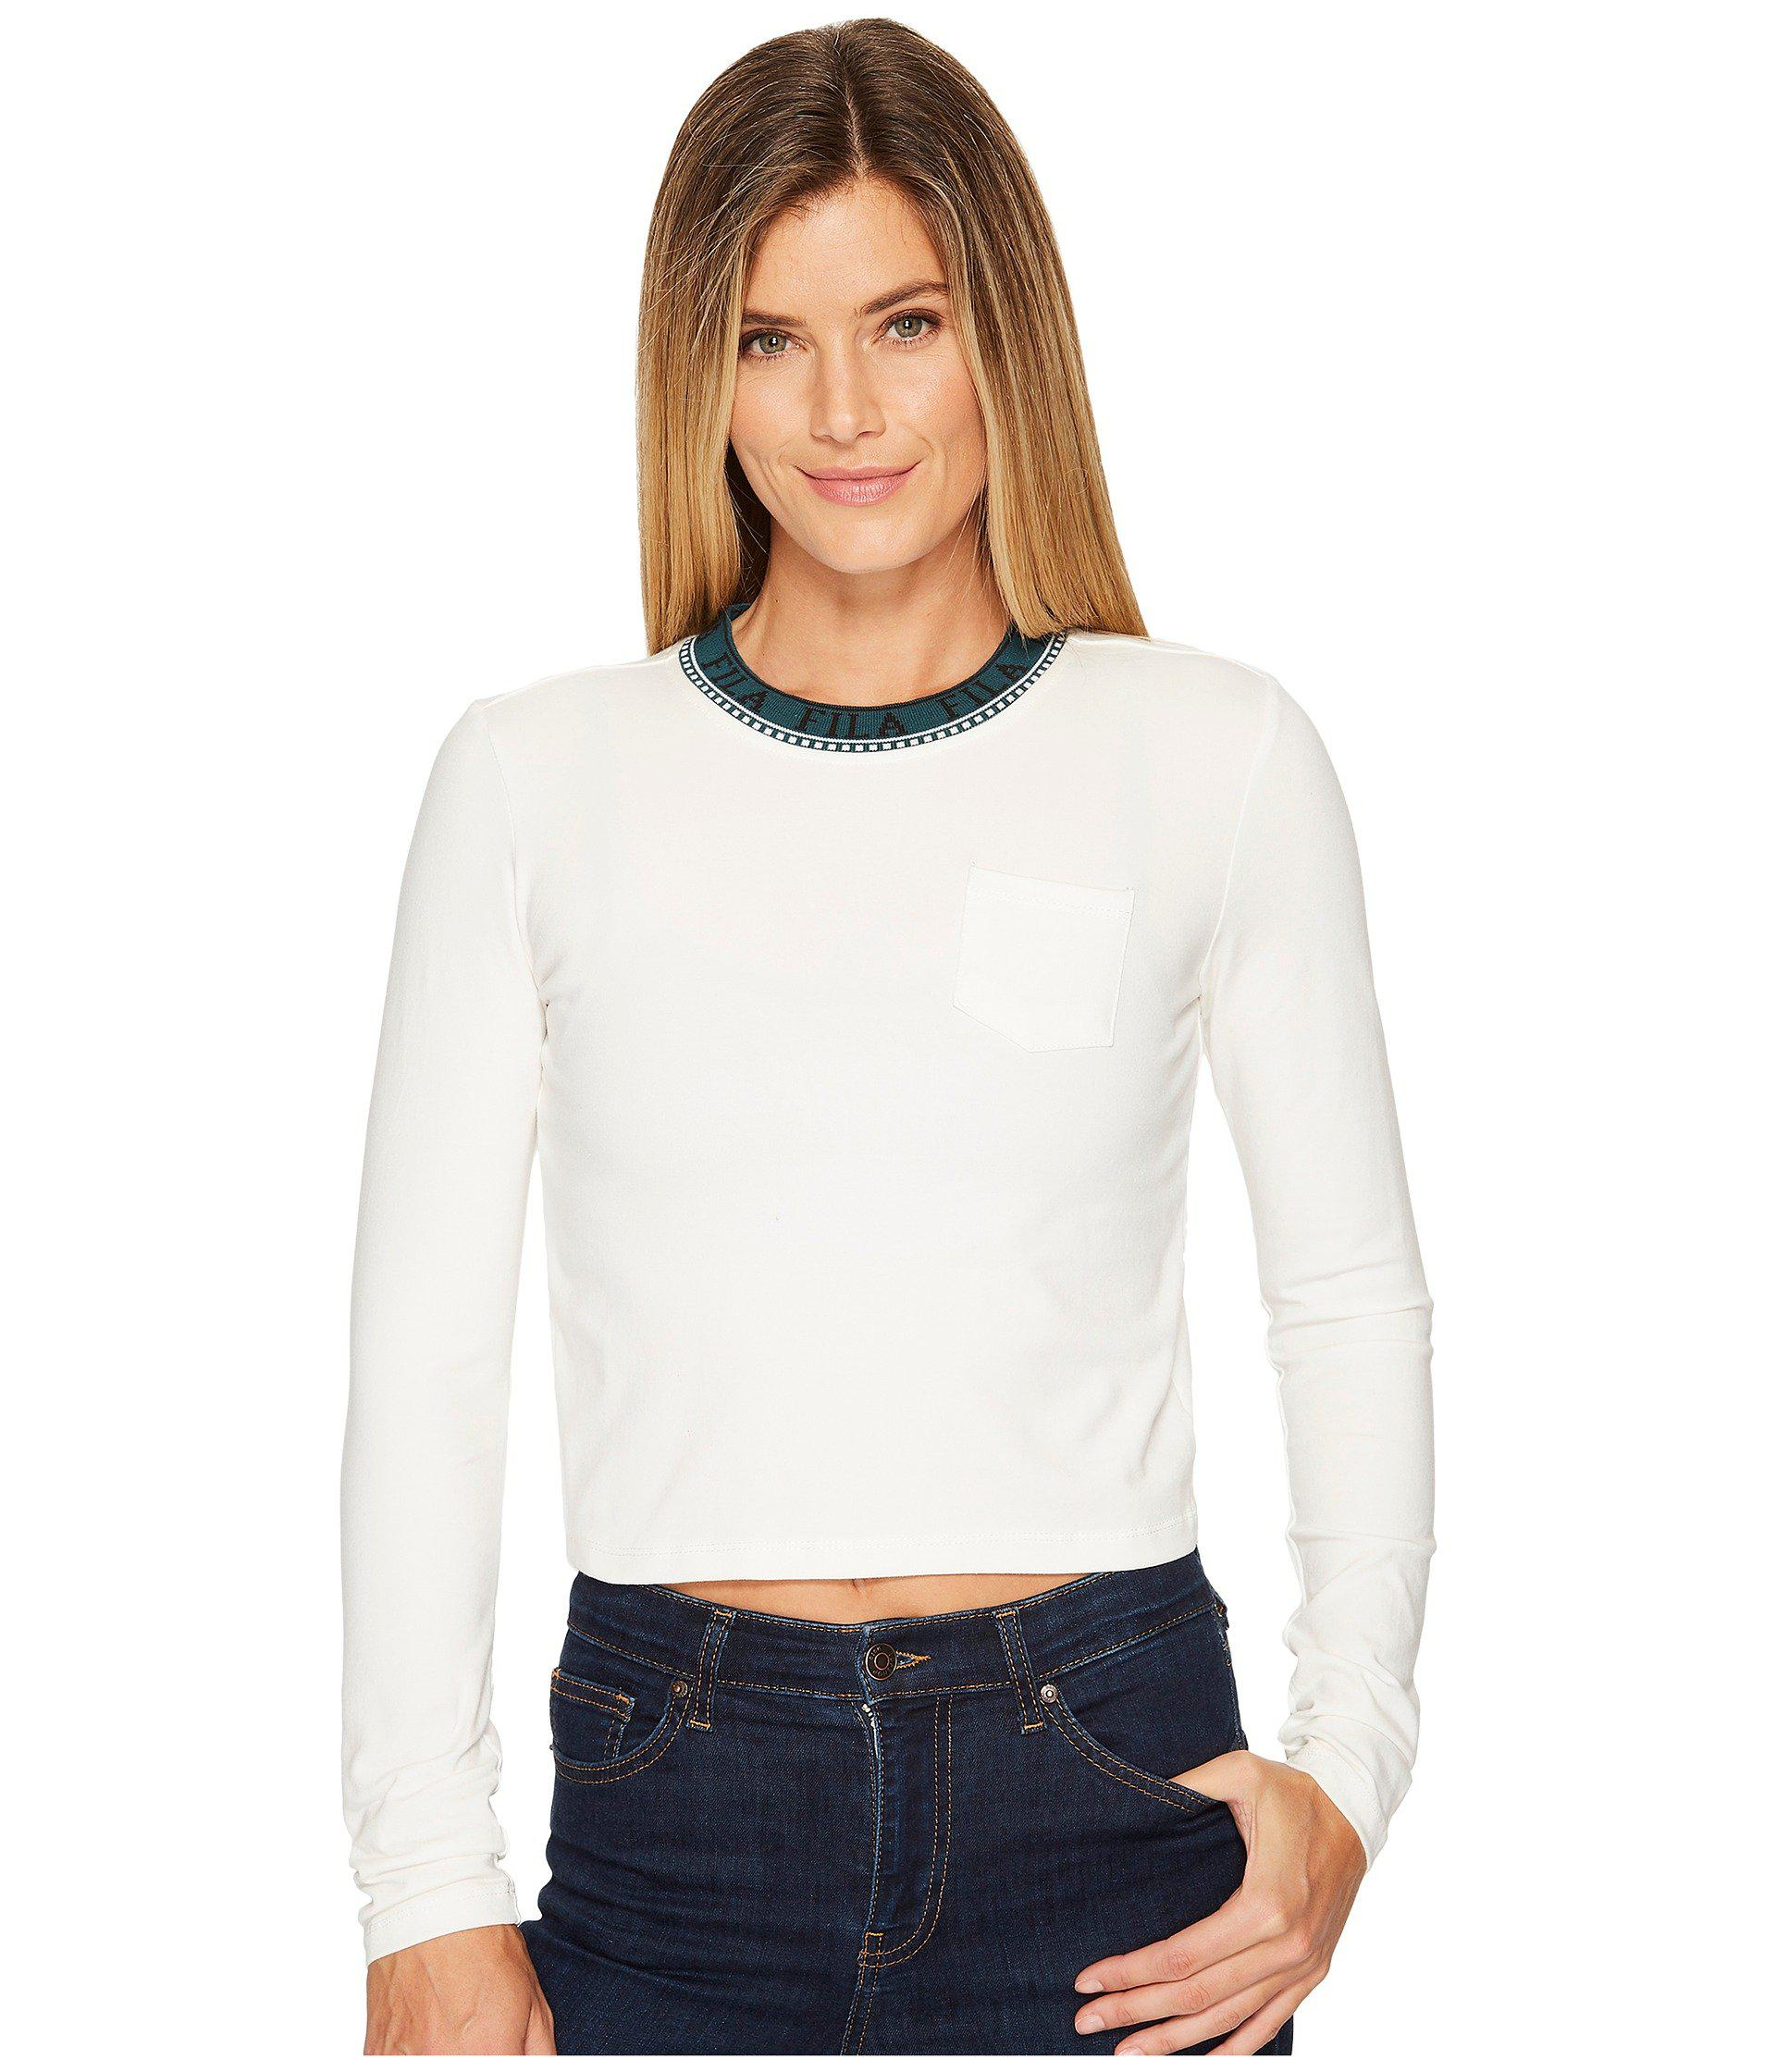 35c9613d8242bb Lyst - Fila Rebecca Long Sleeve Top in White - Save 24%